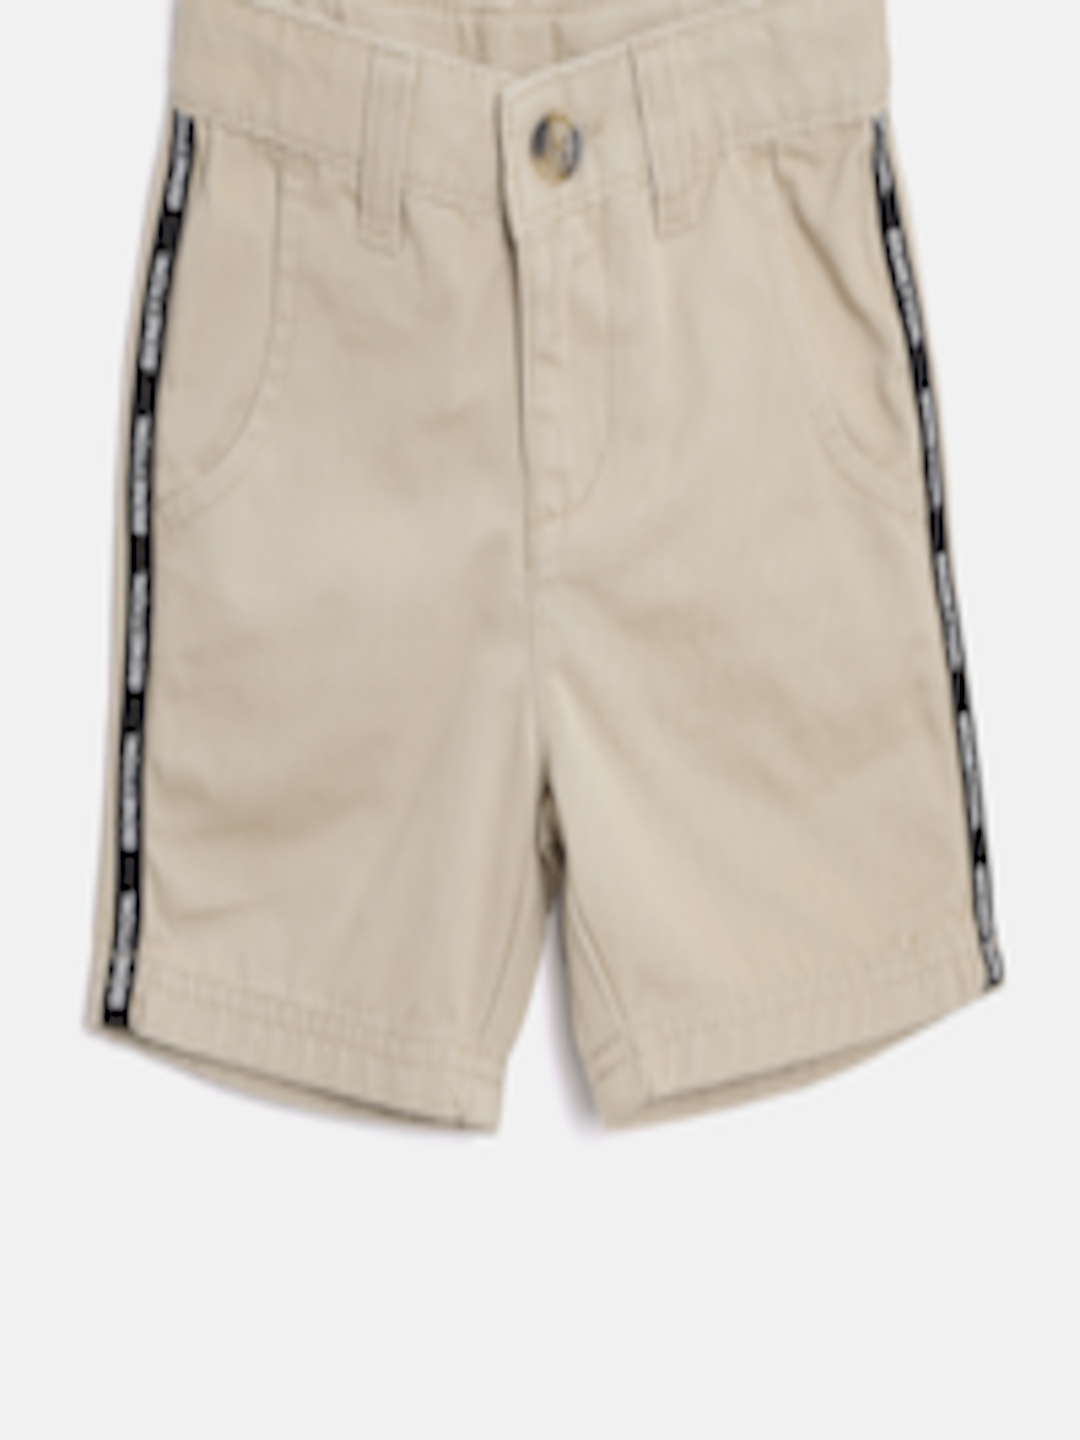 United Colors of Benetton Baby Shorts